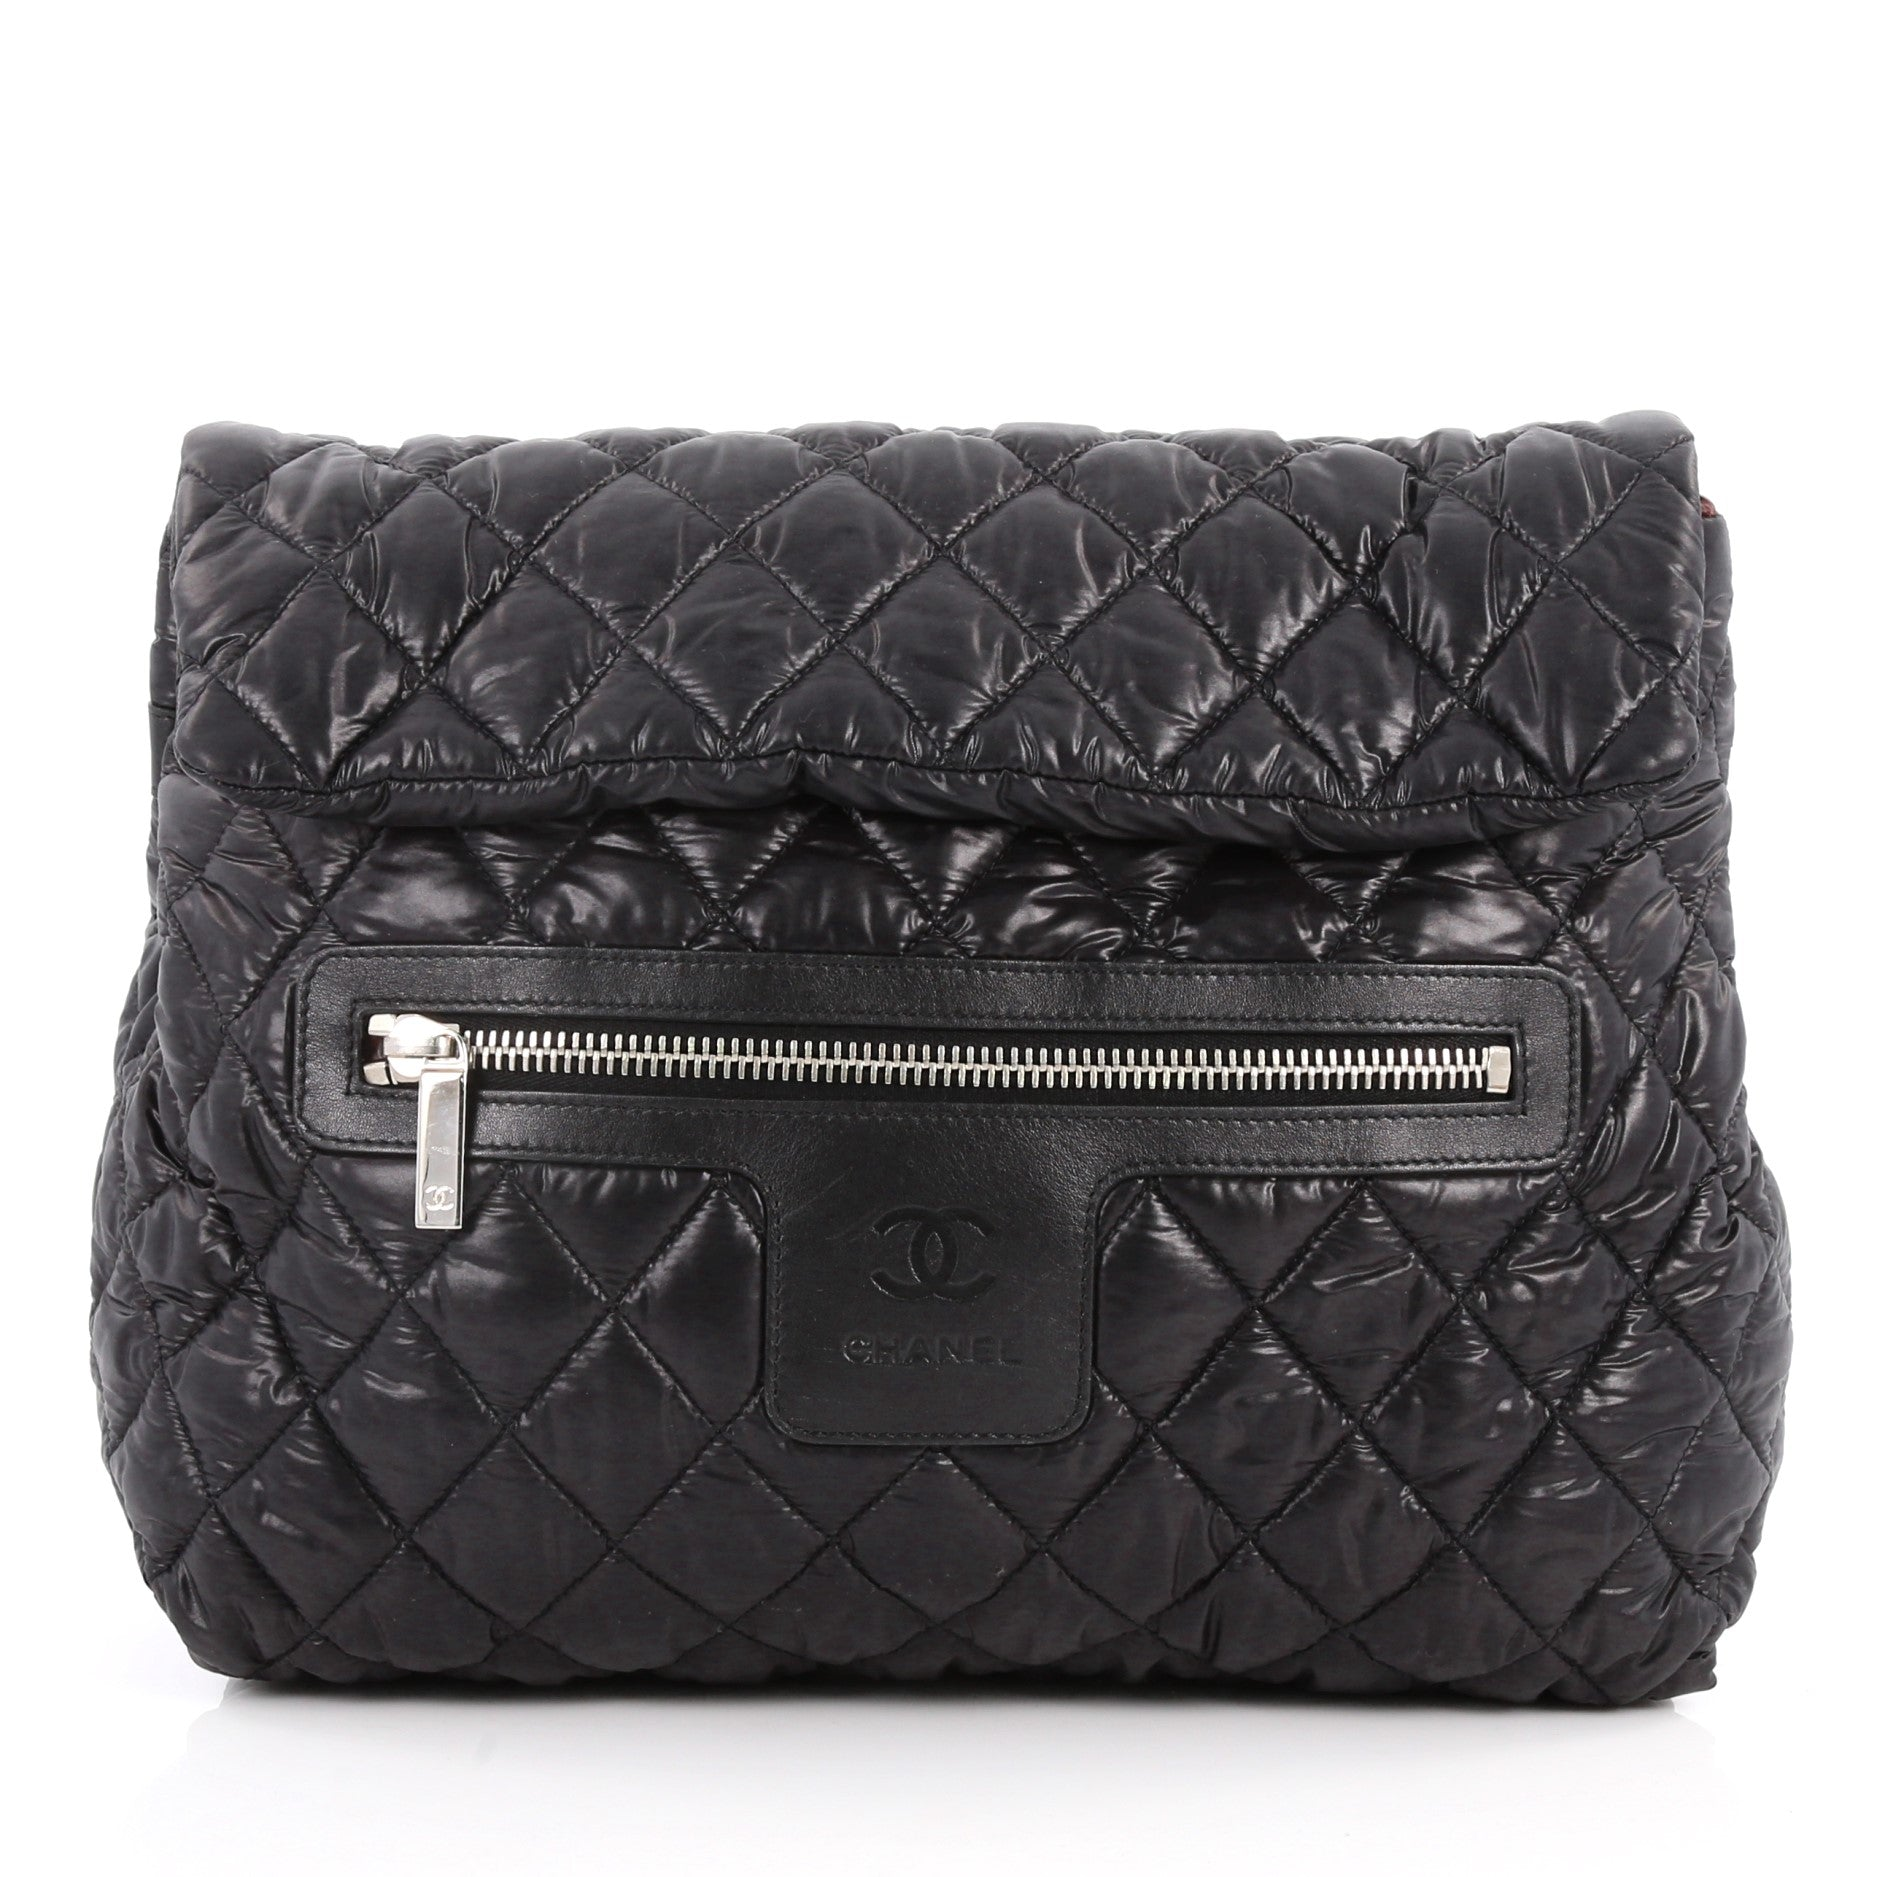 9ff06615038c72 32192-03_Chanel_Coco_Cocoon_Flap_Backpack_Quilted_2D_0003.jpg?v=1530025813